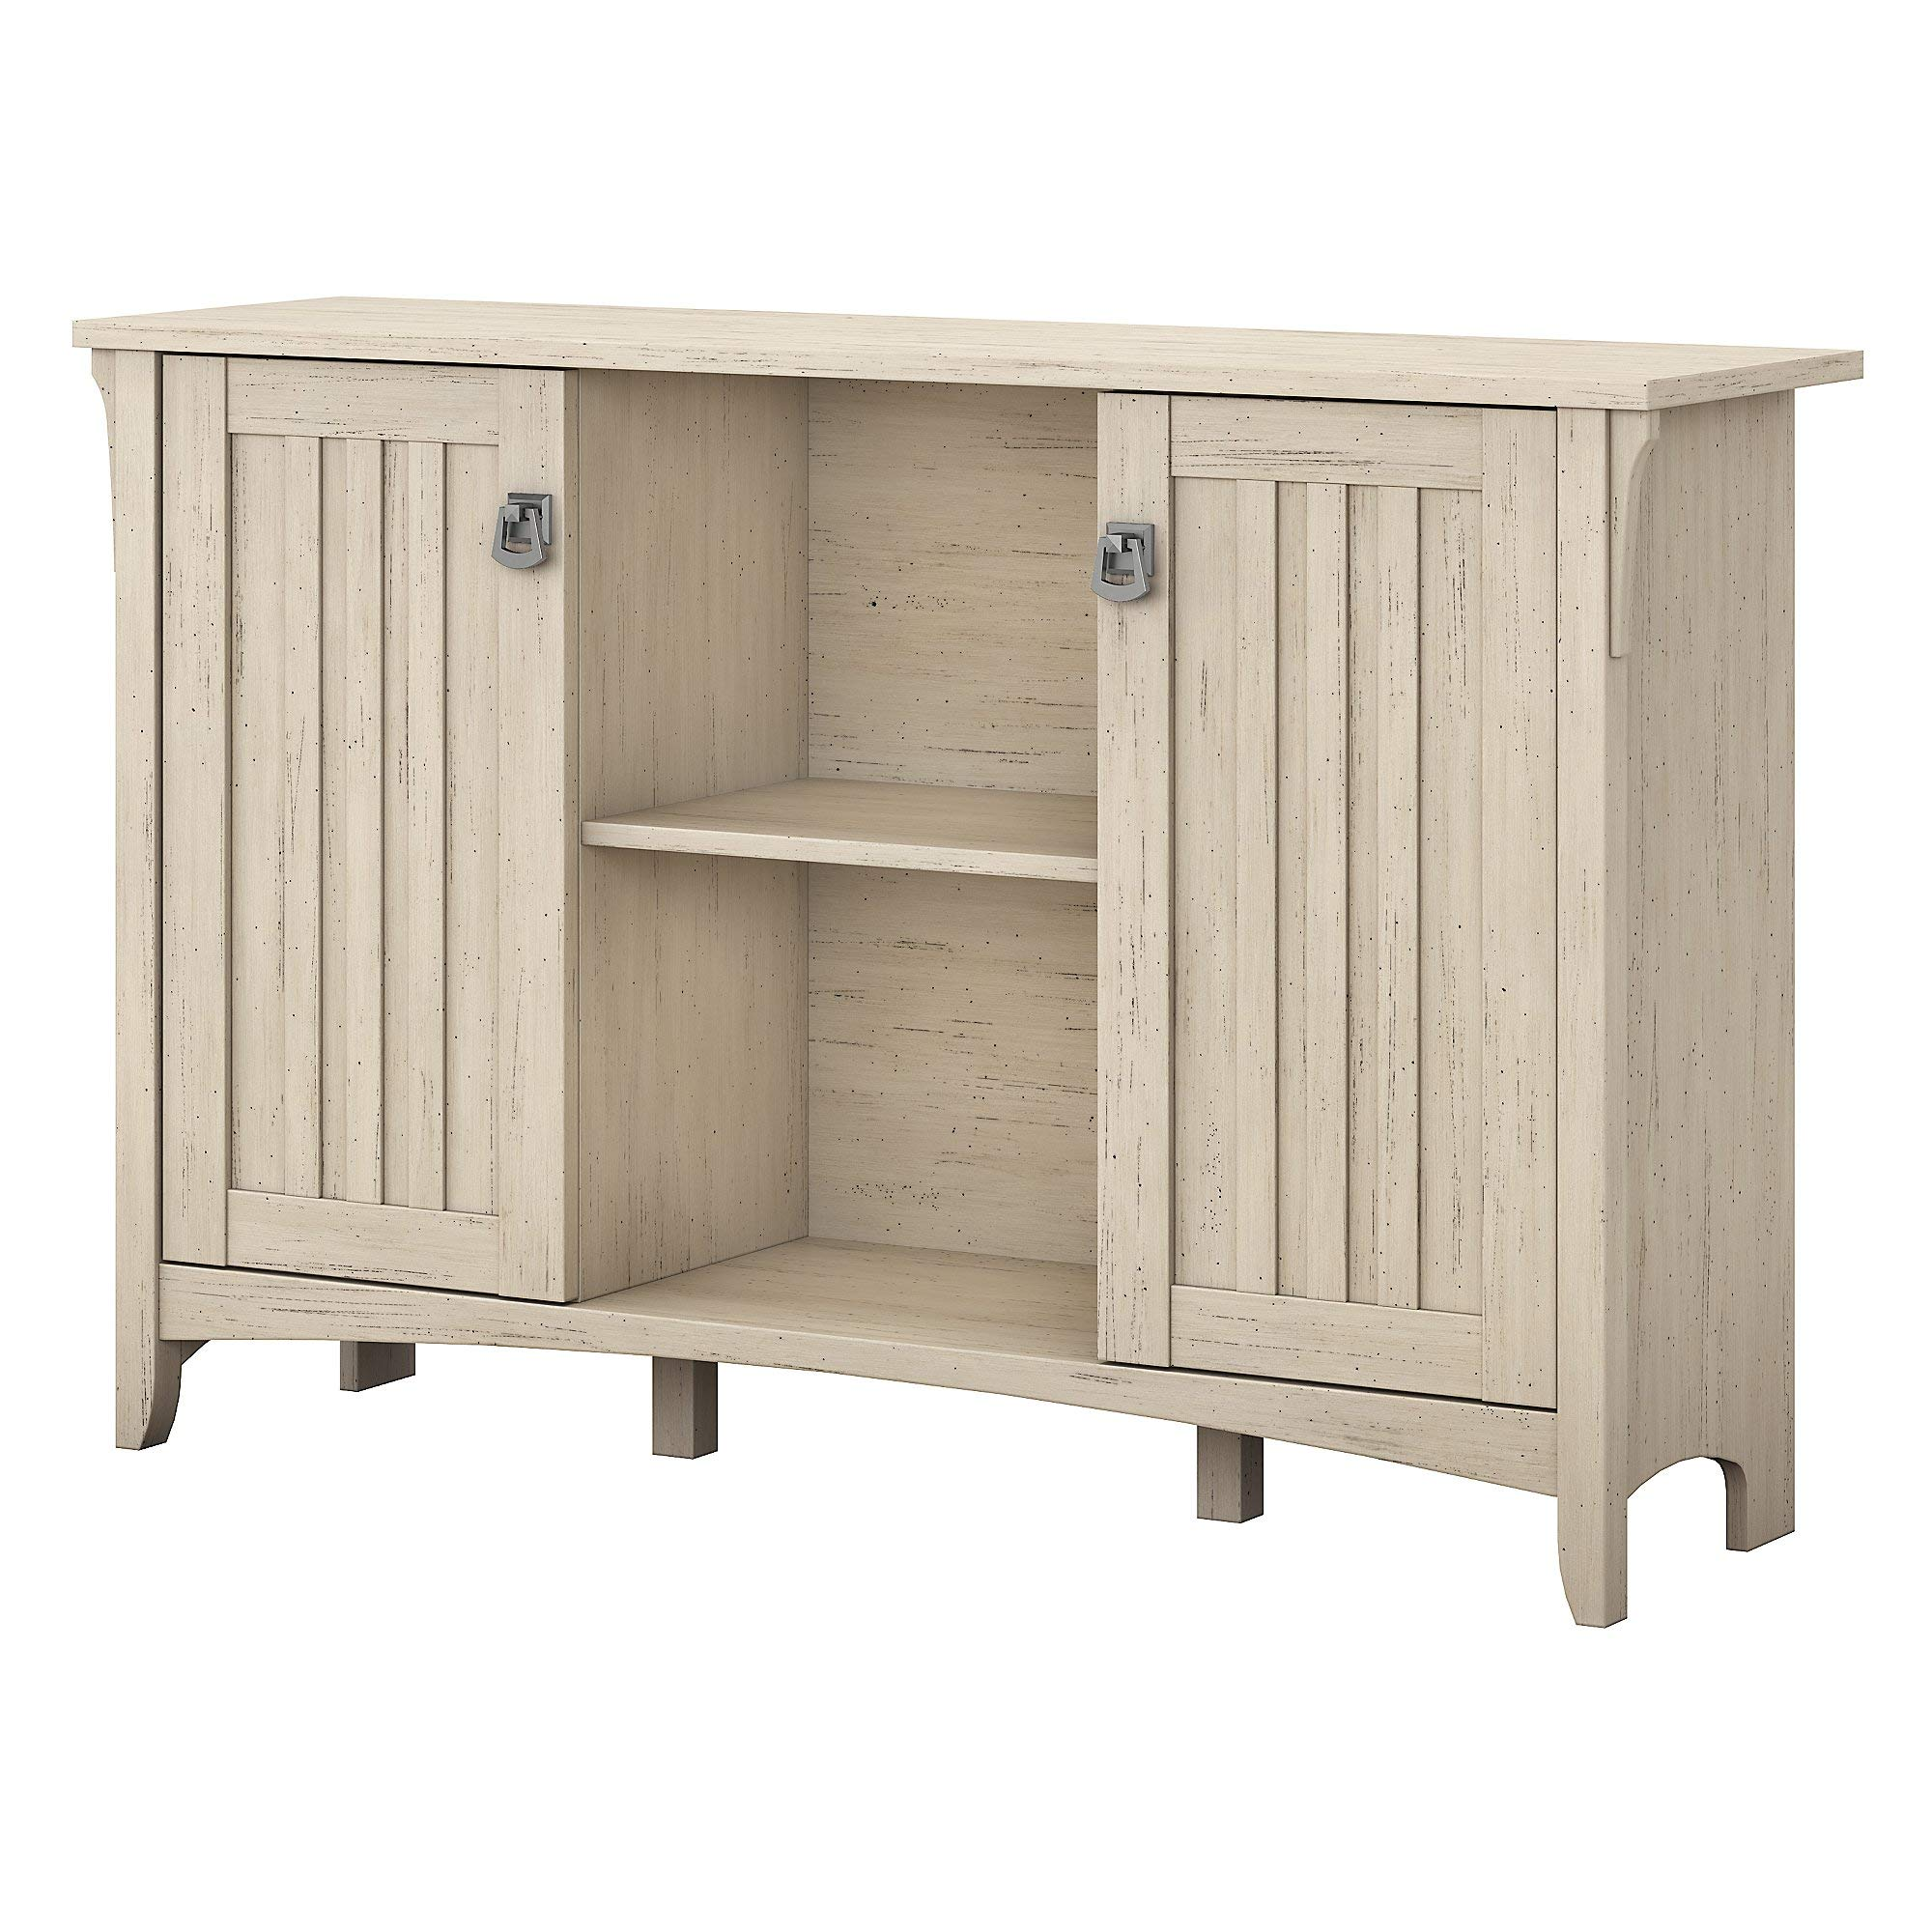 Bush Furniture Salinas Accent Storage Cabinet with Doors in Antique White by Bush Furniture